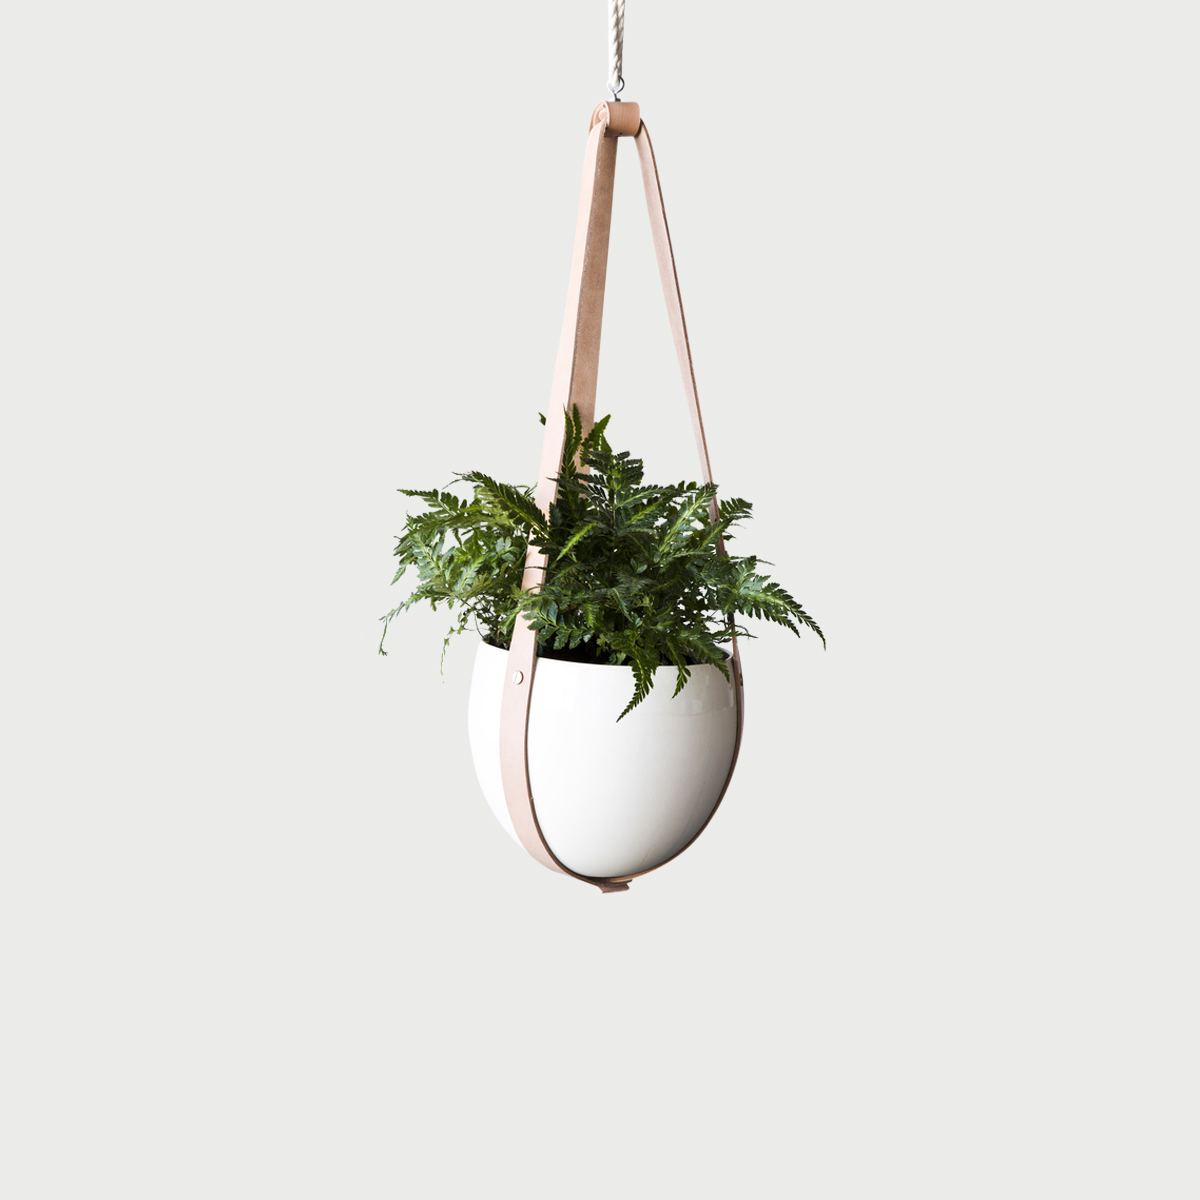 Farrah sit leather ceiling planter 1024